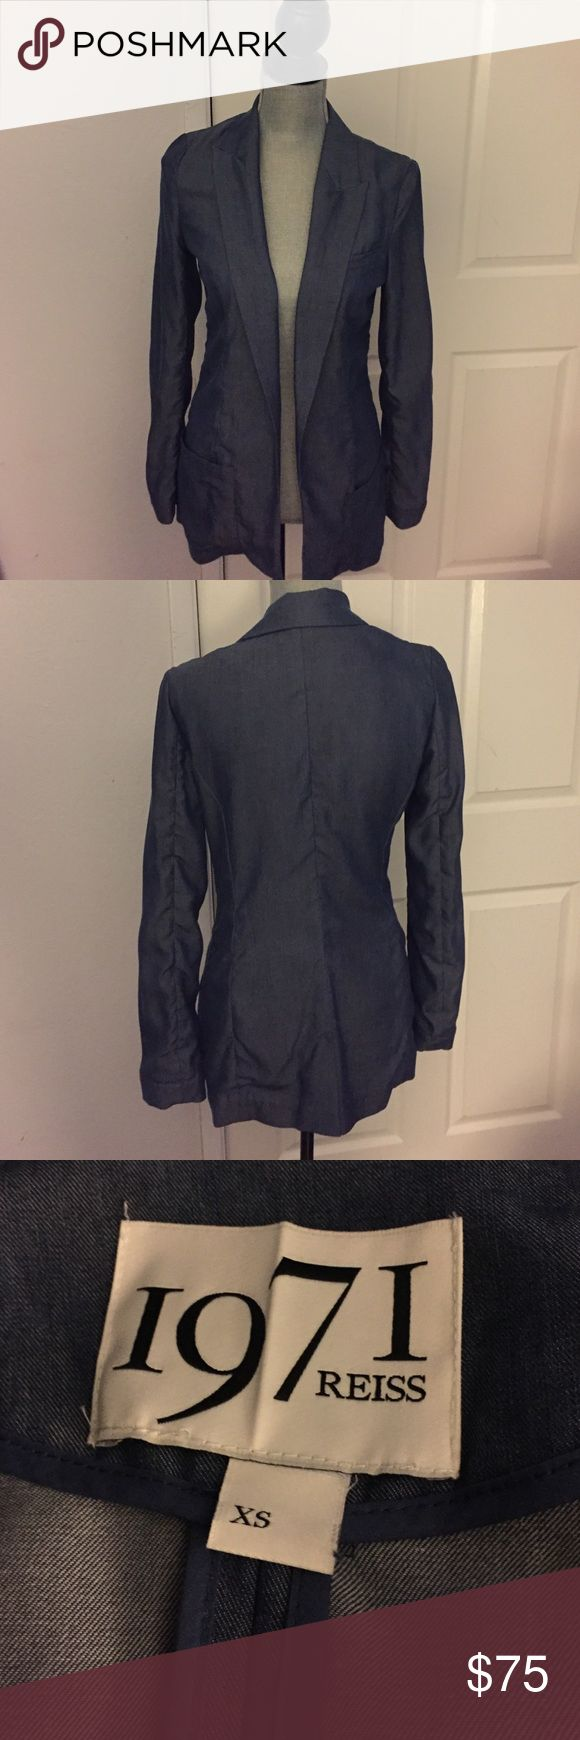 Reiss 1971 Blazer XS Preloved! In good condition! 100% Lyocell. 🚫Trades!! Open to reasonable offers through the offer button!! Reiss Jackets & Coats Blazers